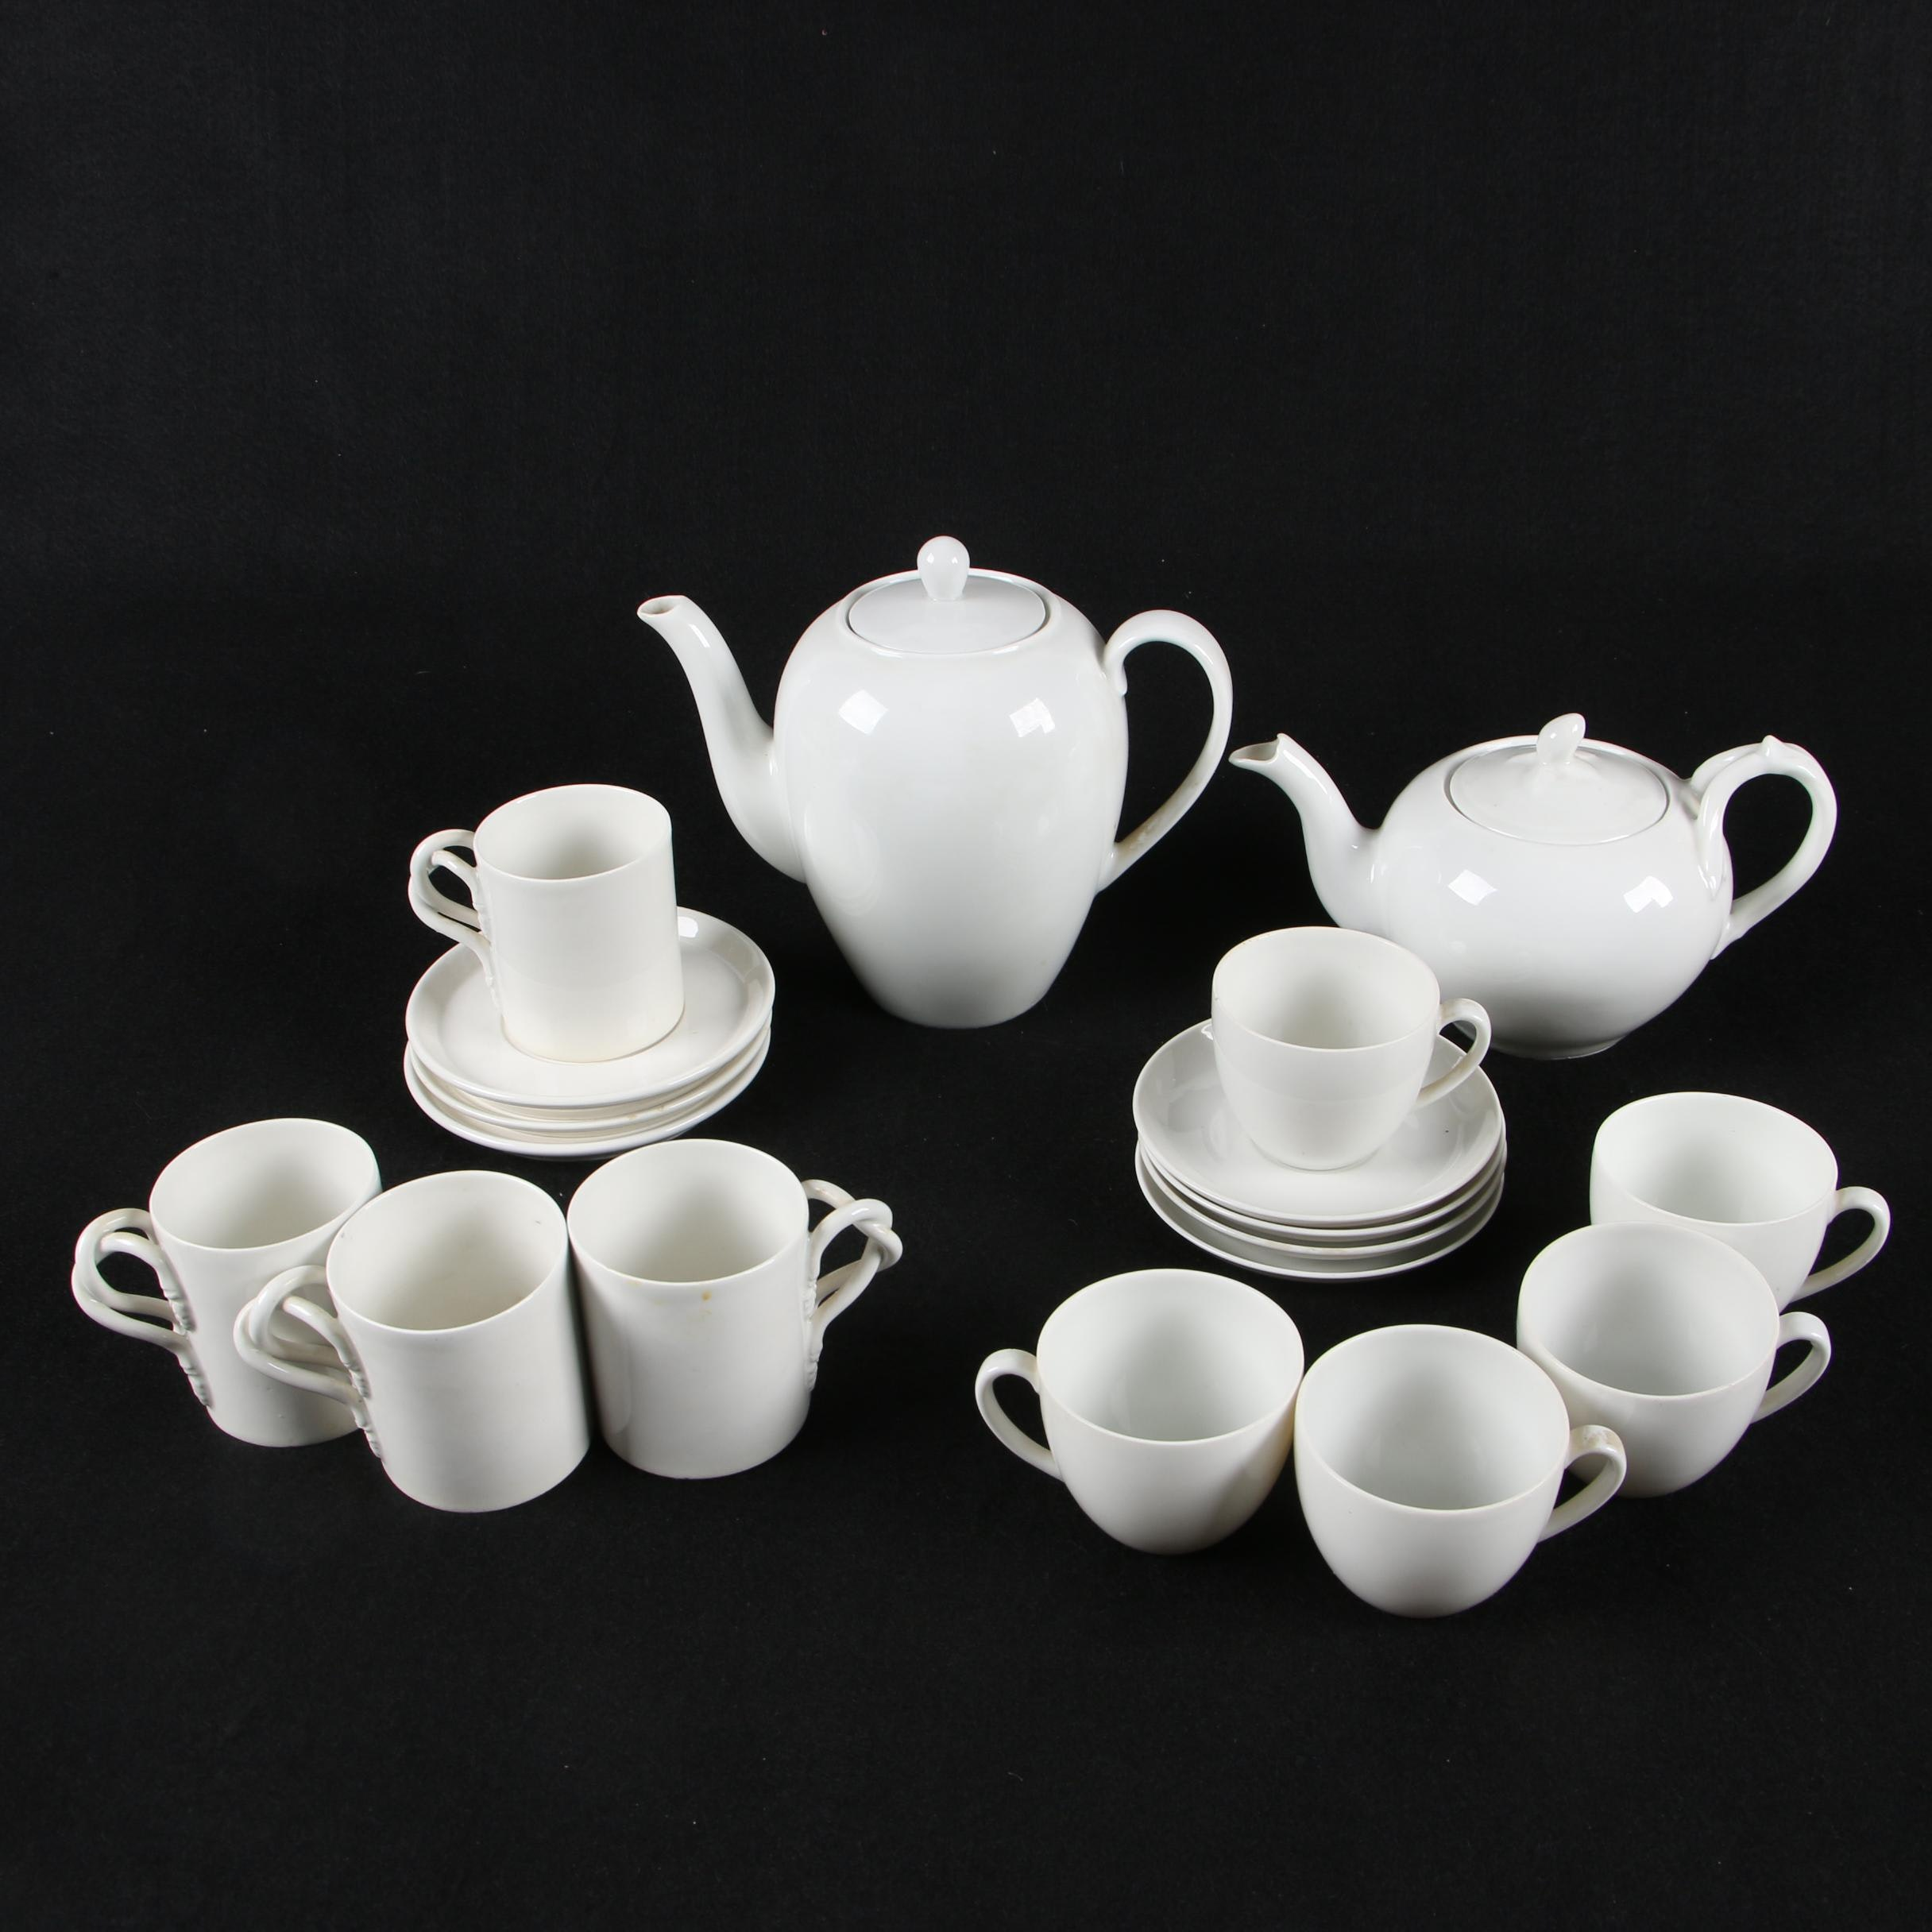 R. Capodimonte and Schonwald Porcelain Tea Sets